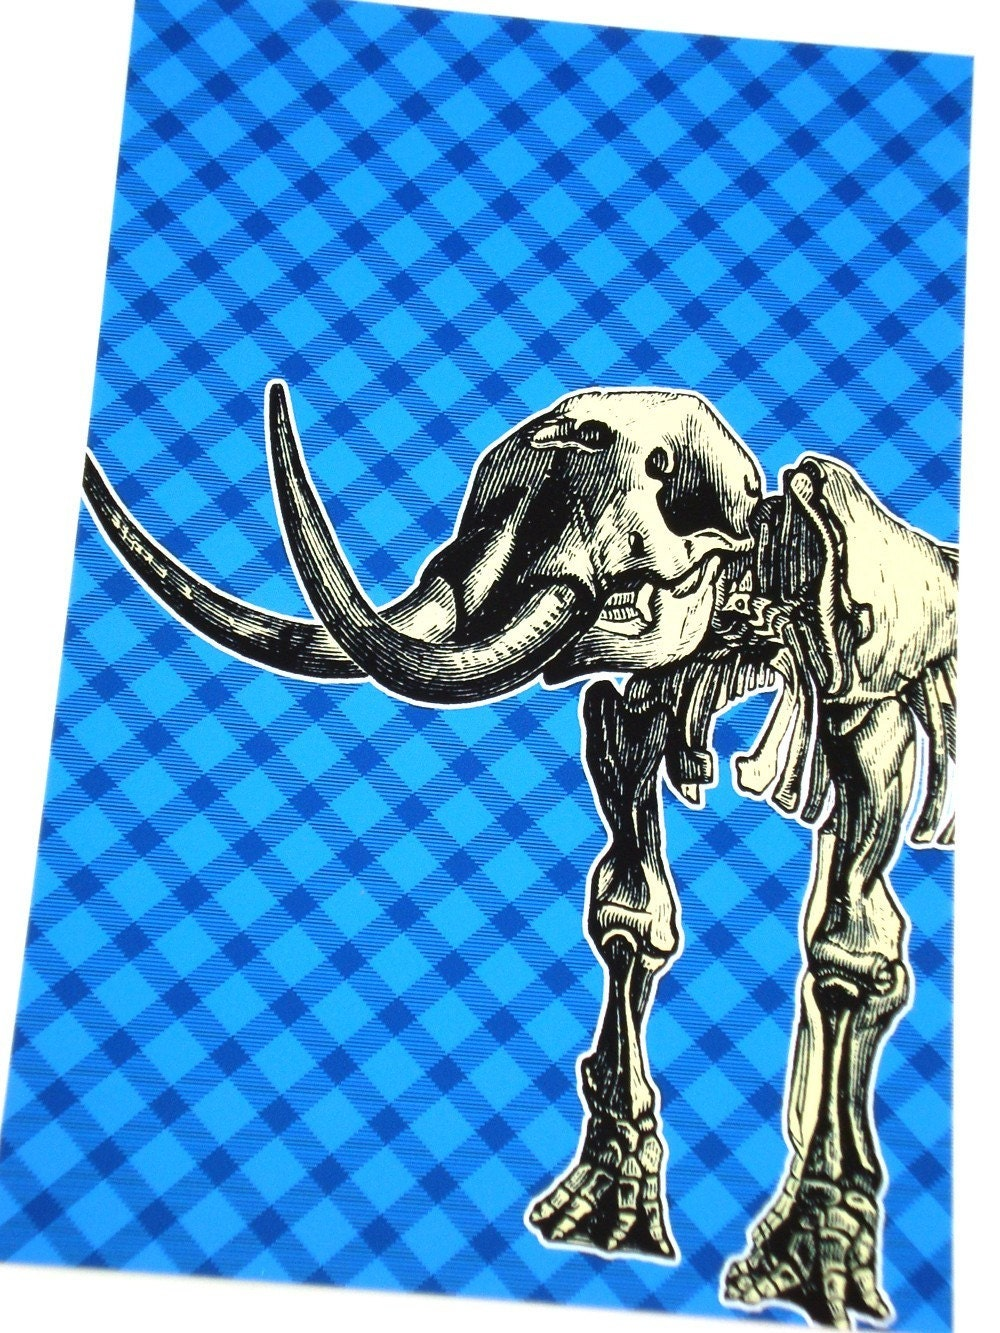 Wholly Mammoth Skeleton - 8x10 Digital Print